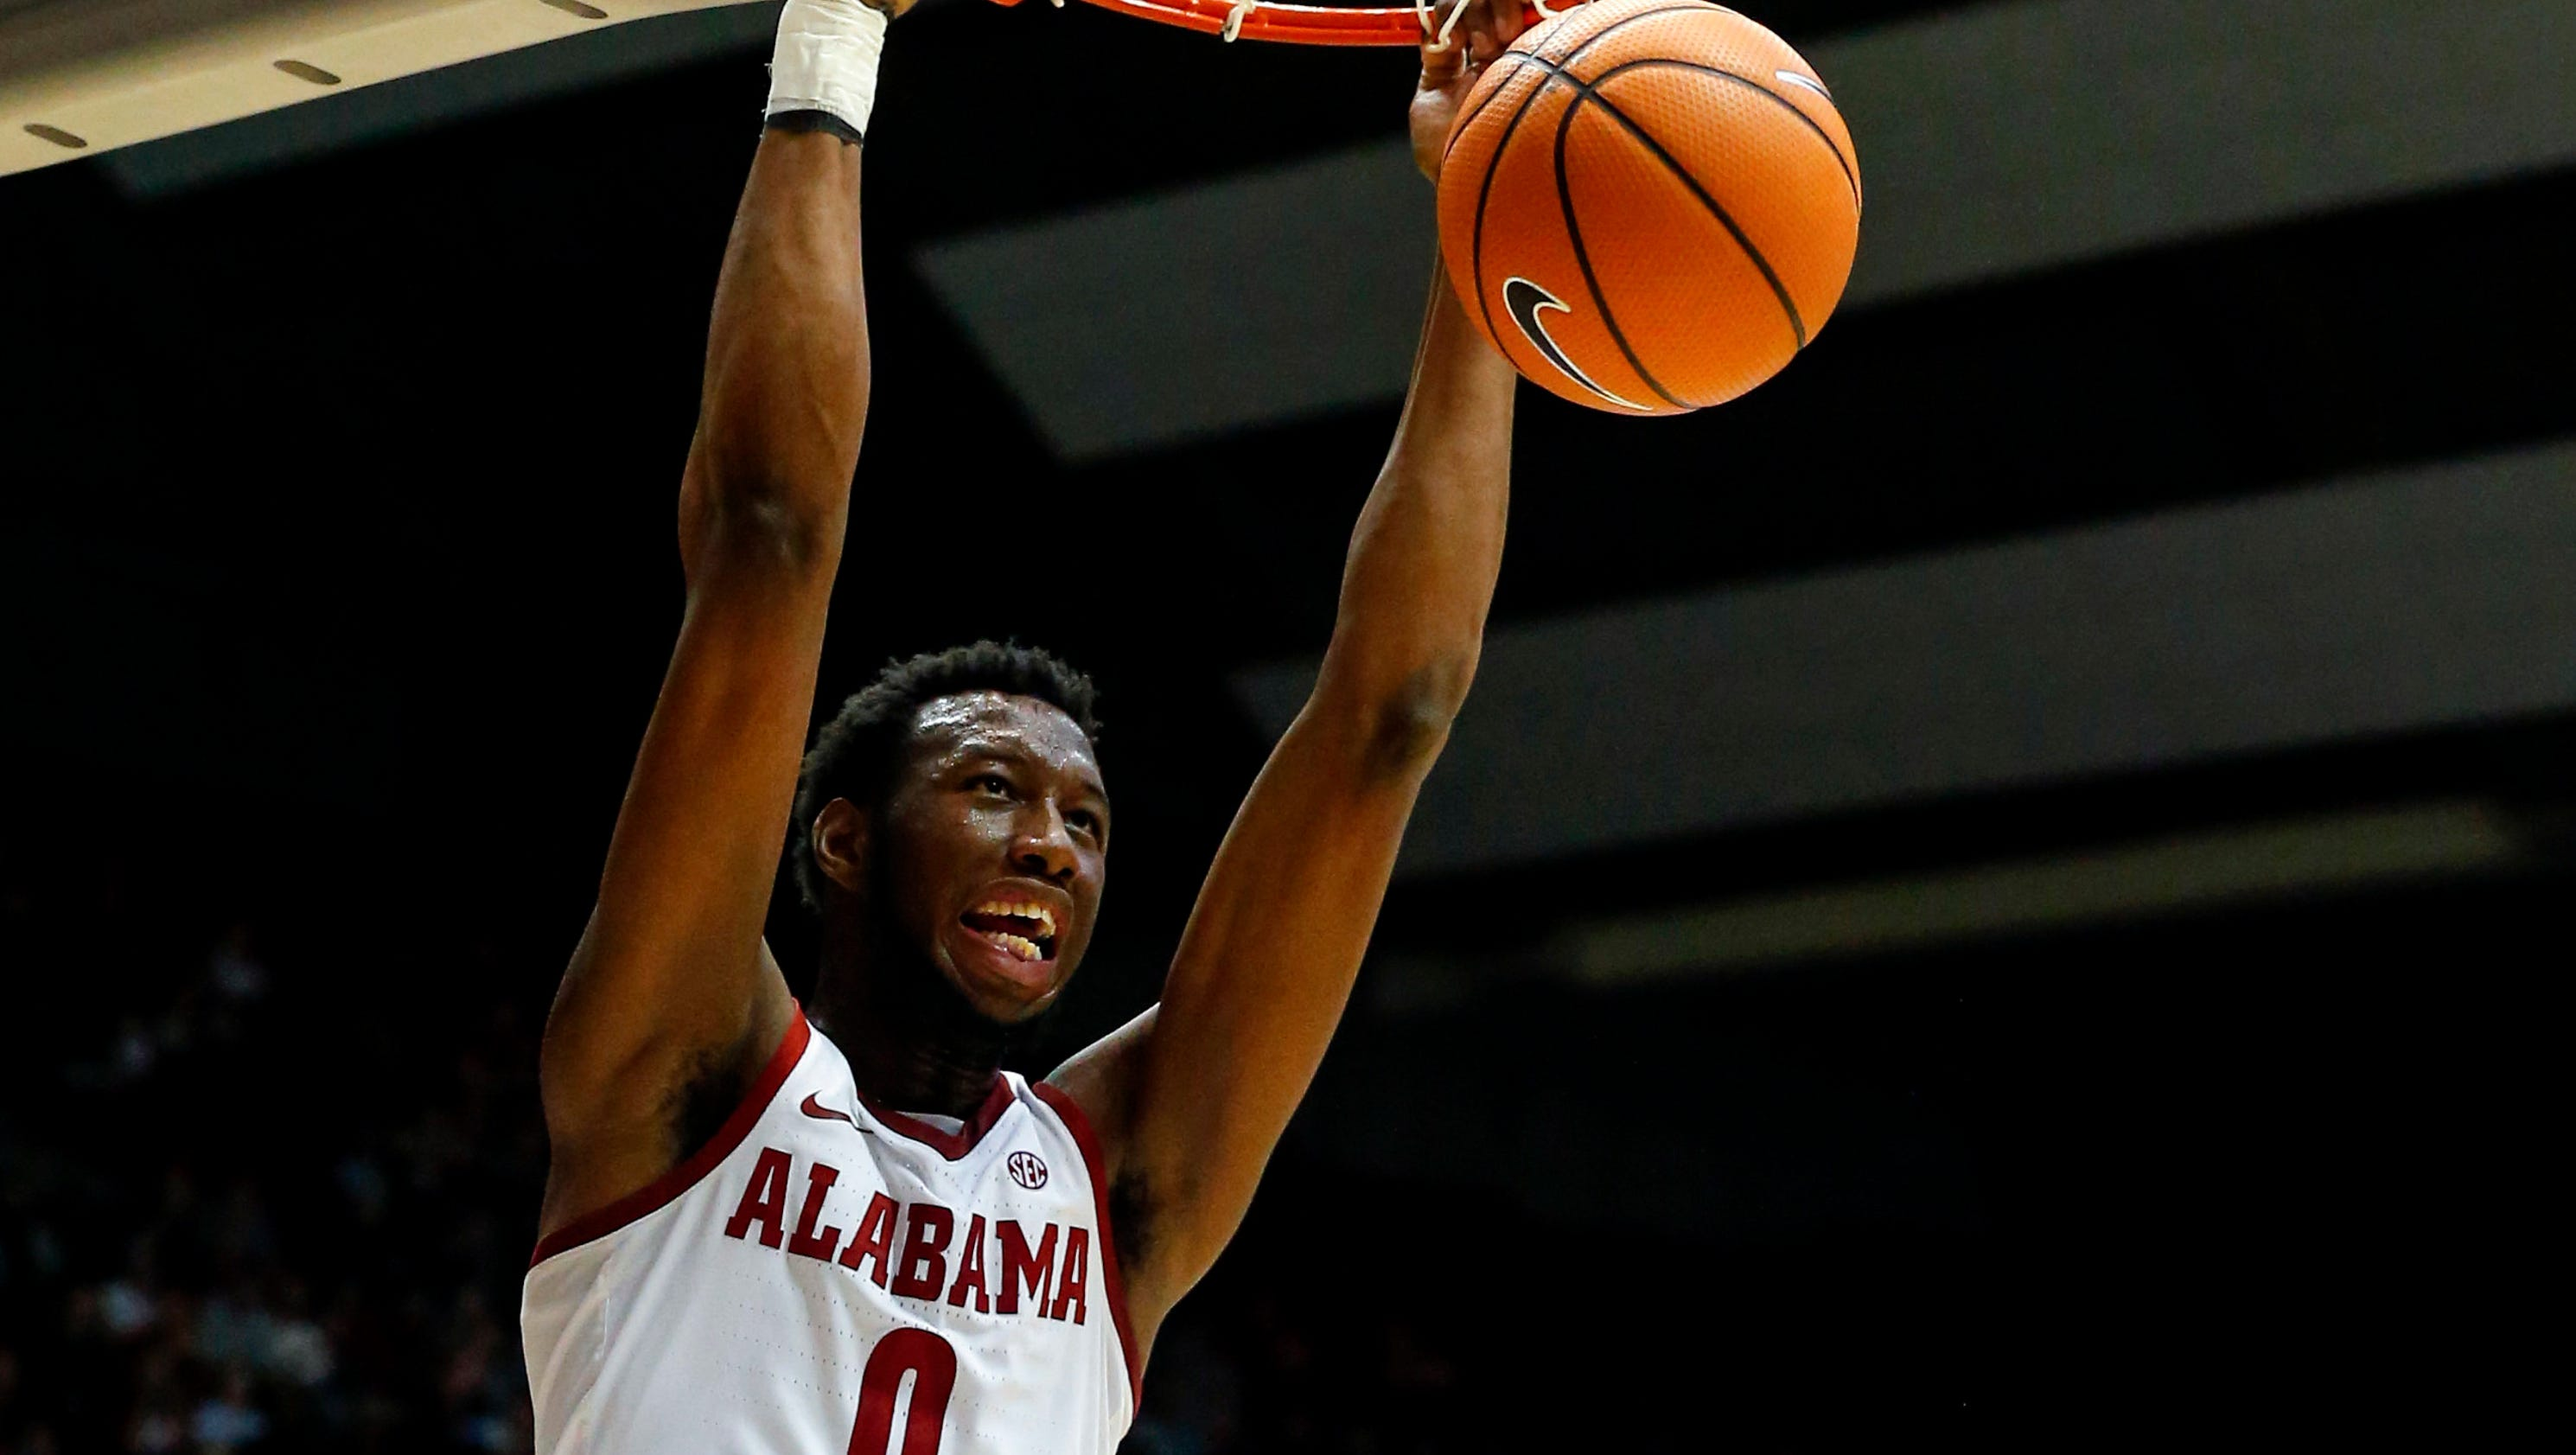 Men's college basketball preview: Alabama vs. BYU